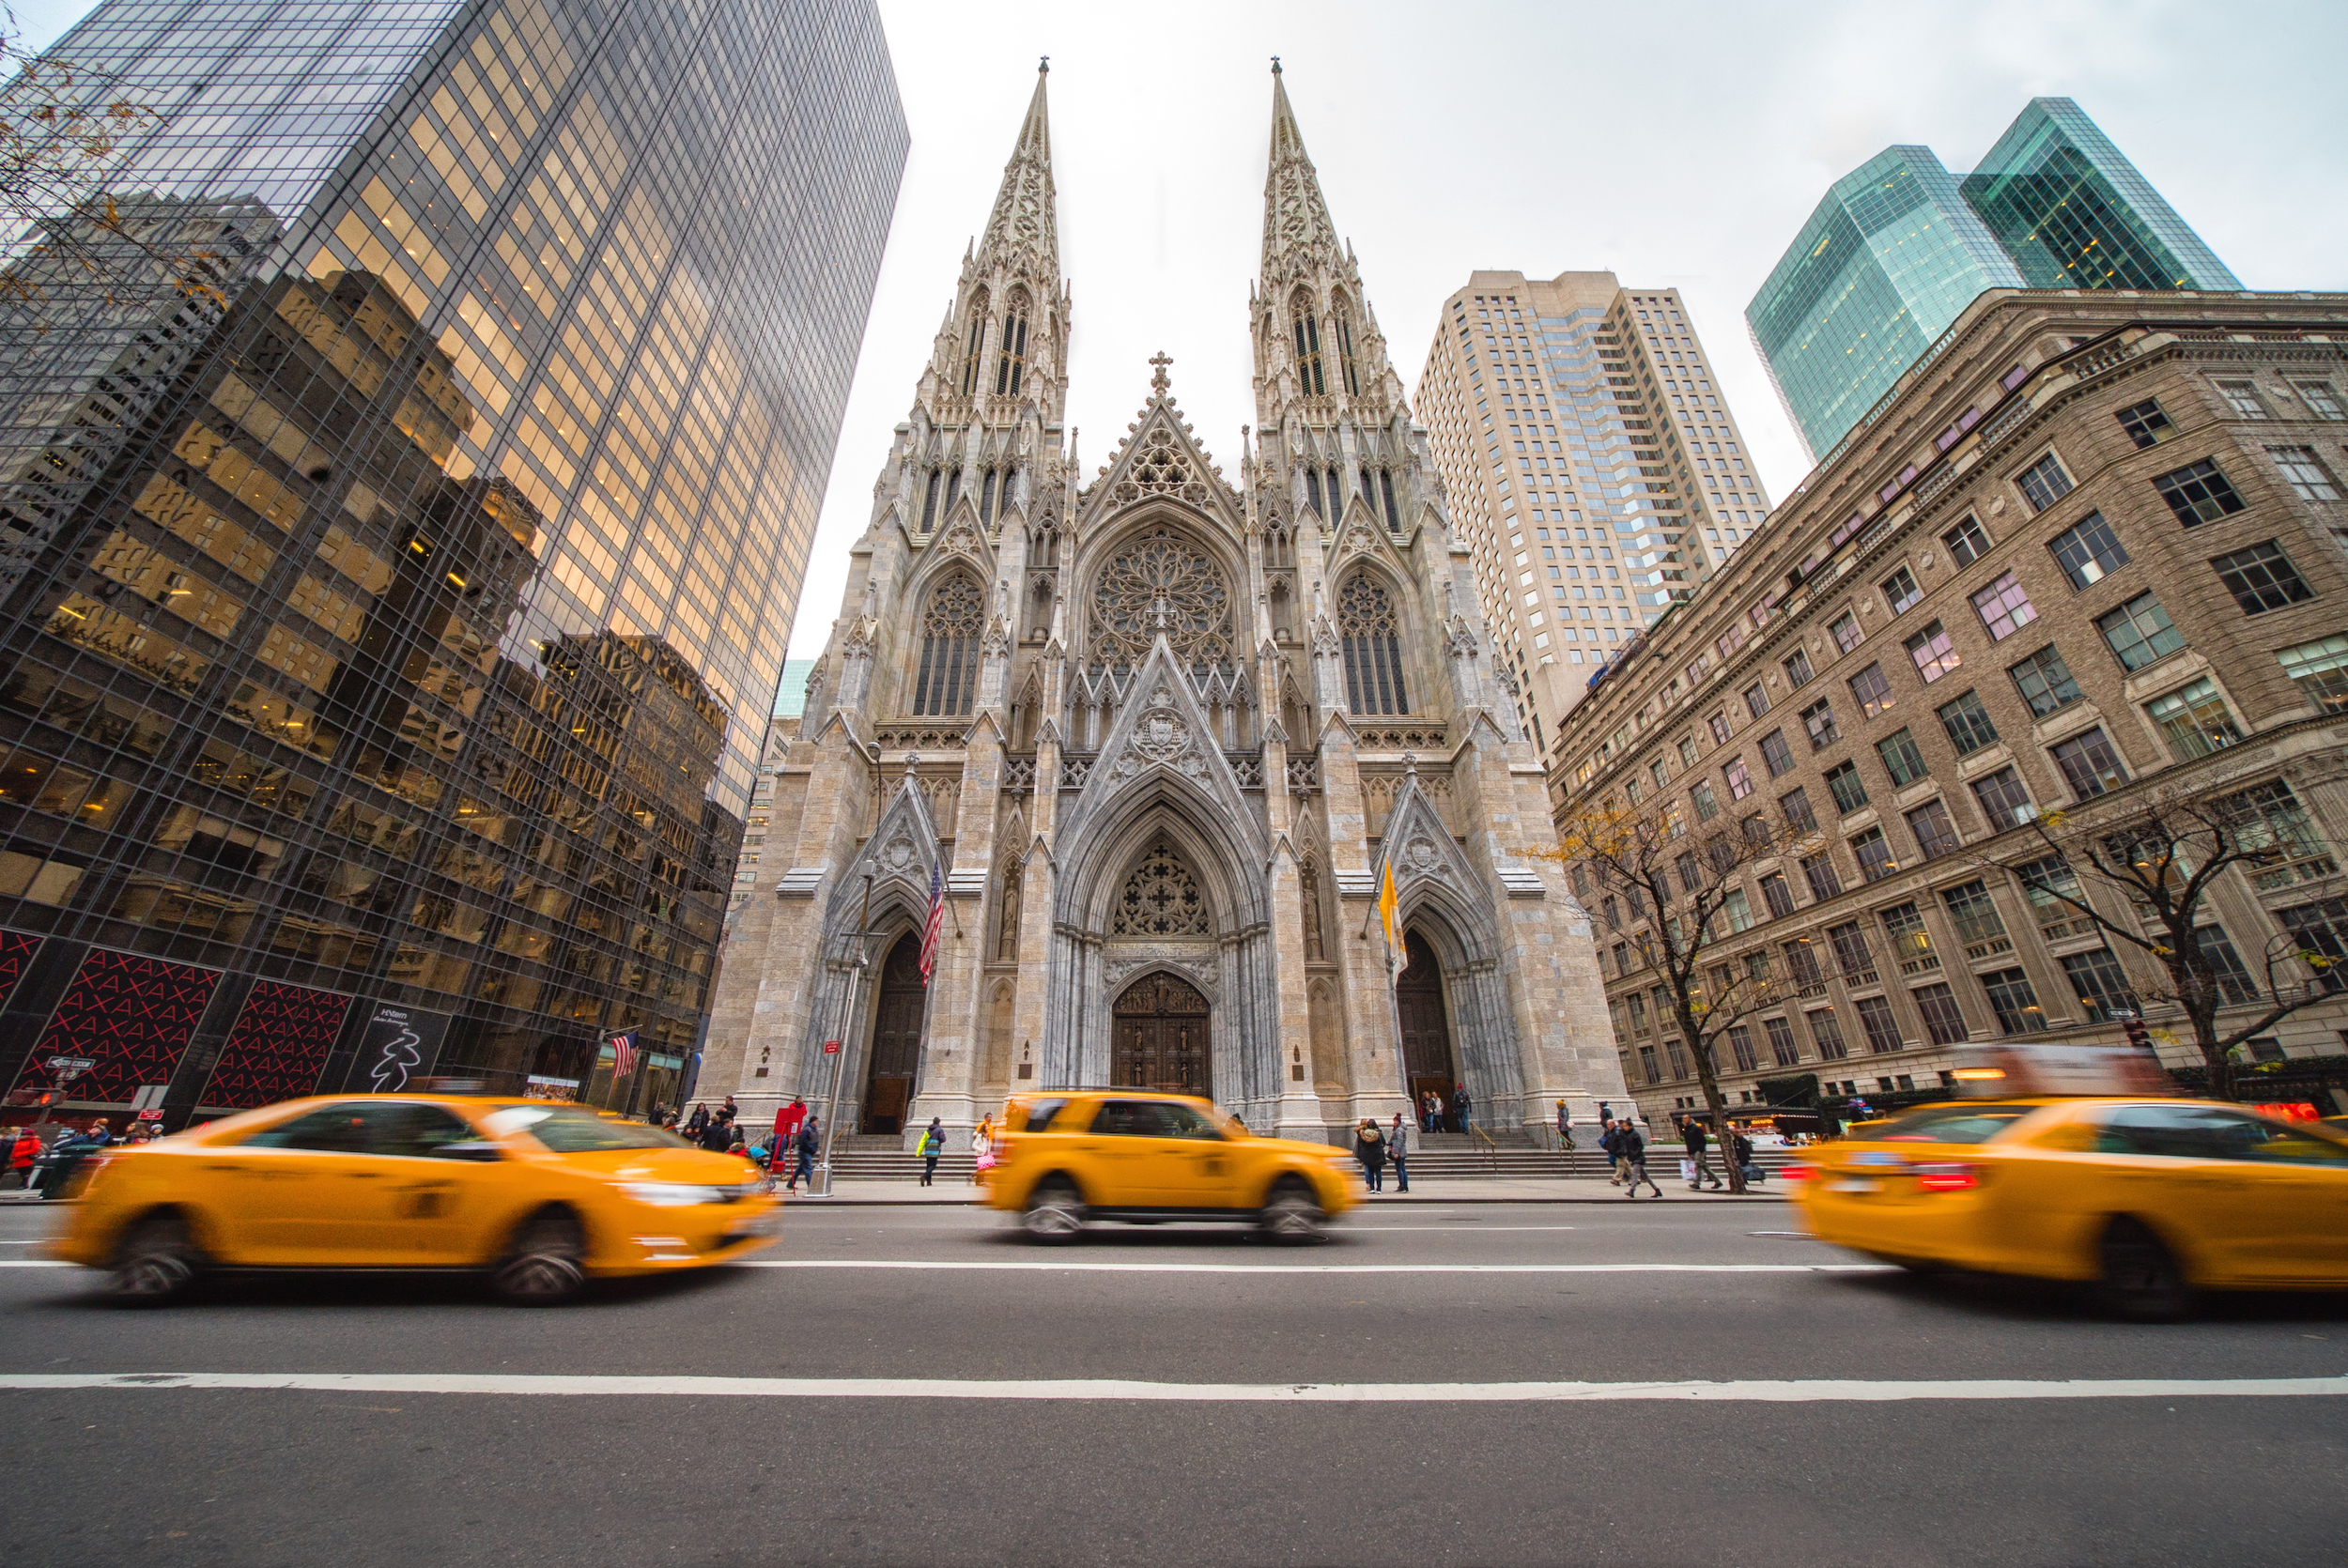 St. Patrick's Cathedral could cash in on air rights for $7.2M